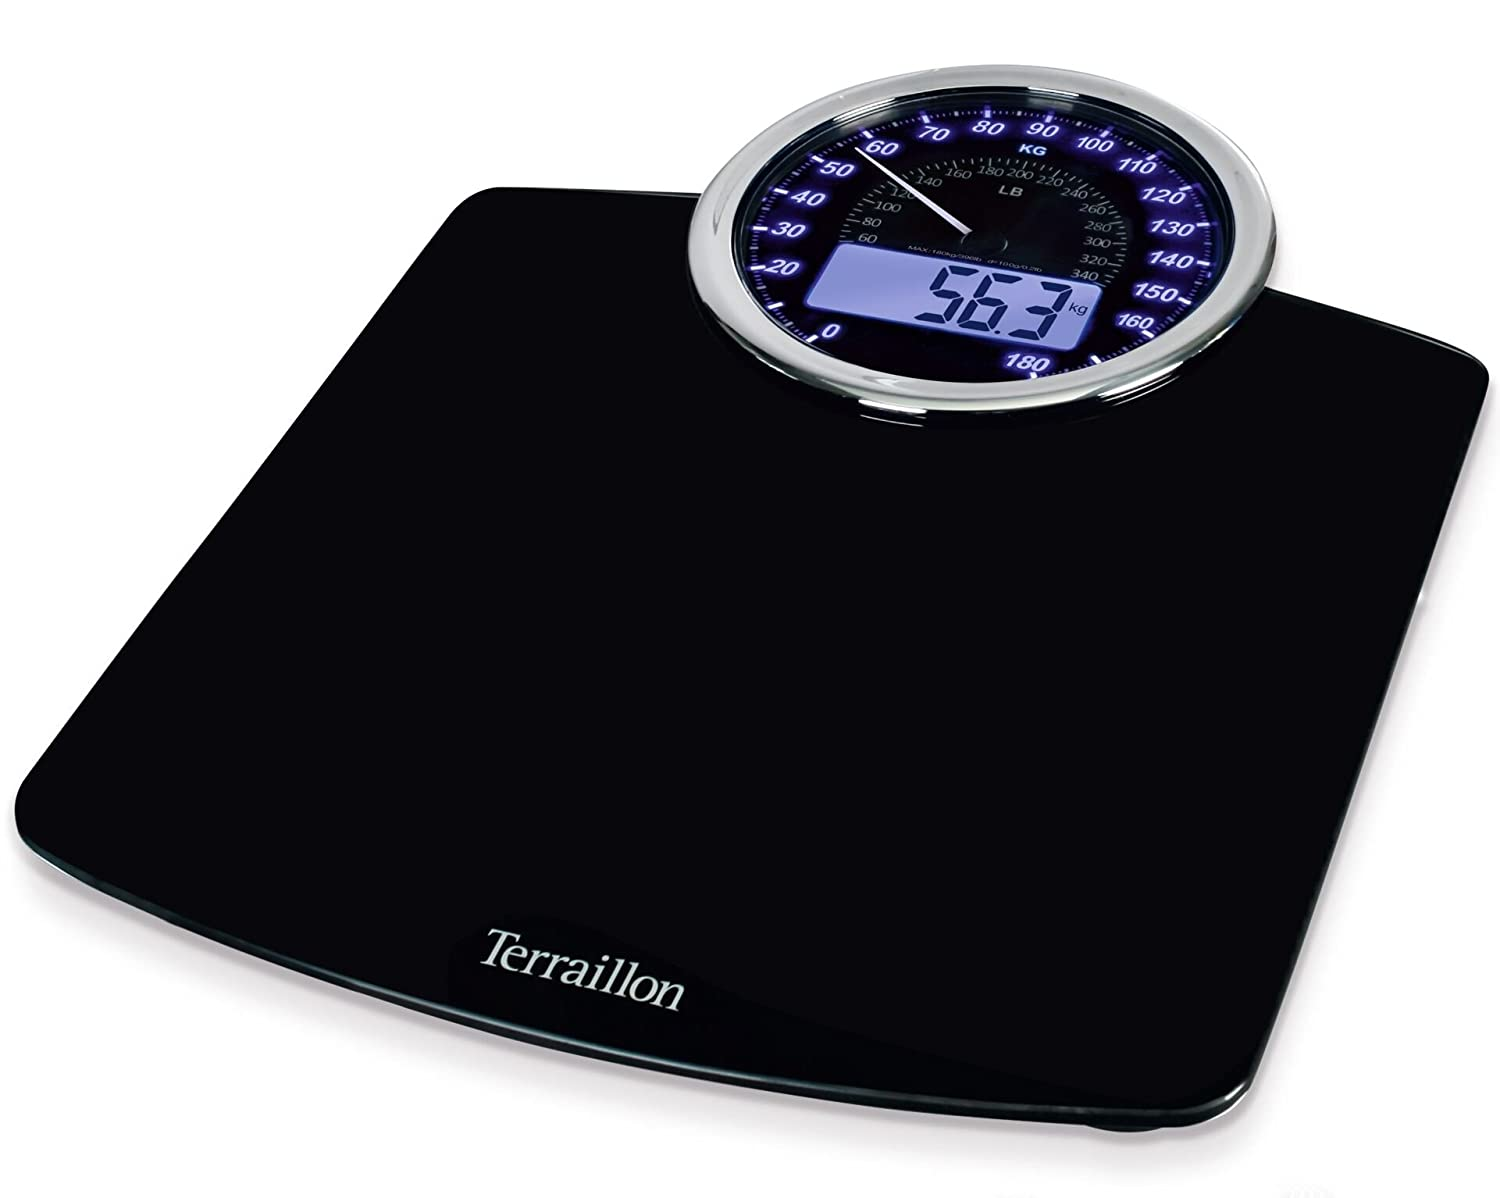 Terraillon Electronic Bathroom Scales, Mechanical and Digital Display, Black 13737